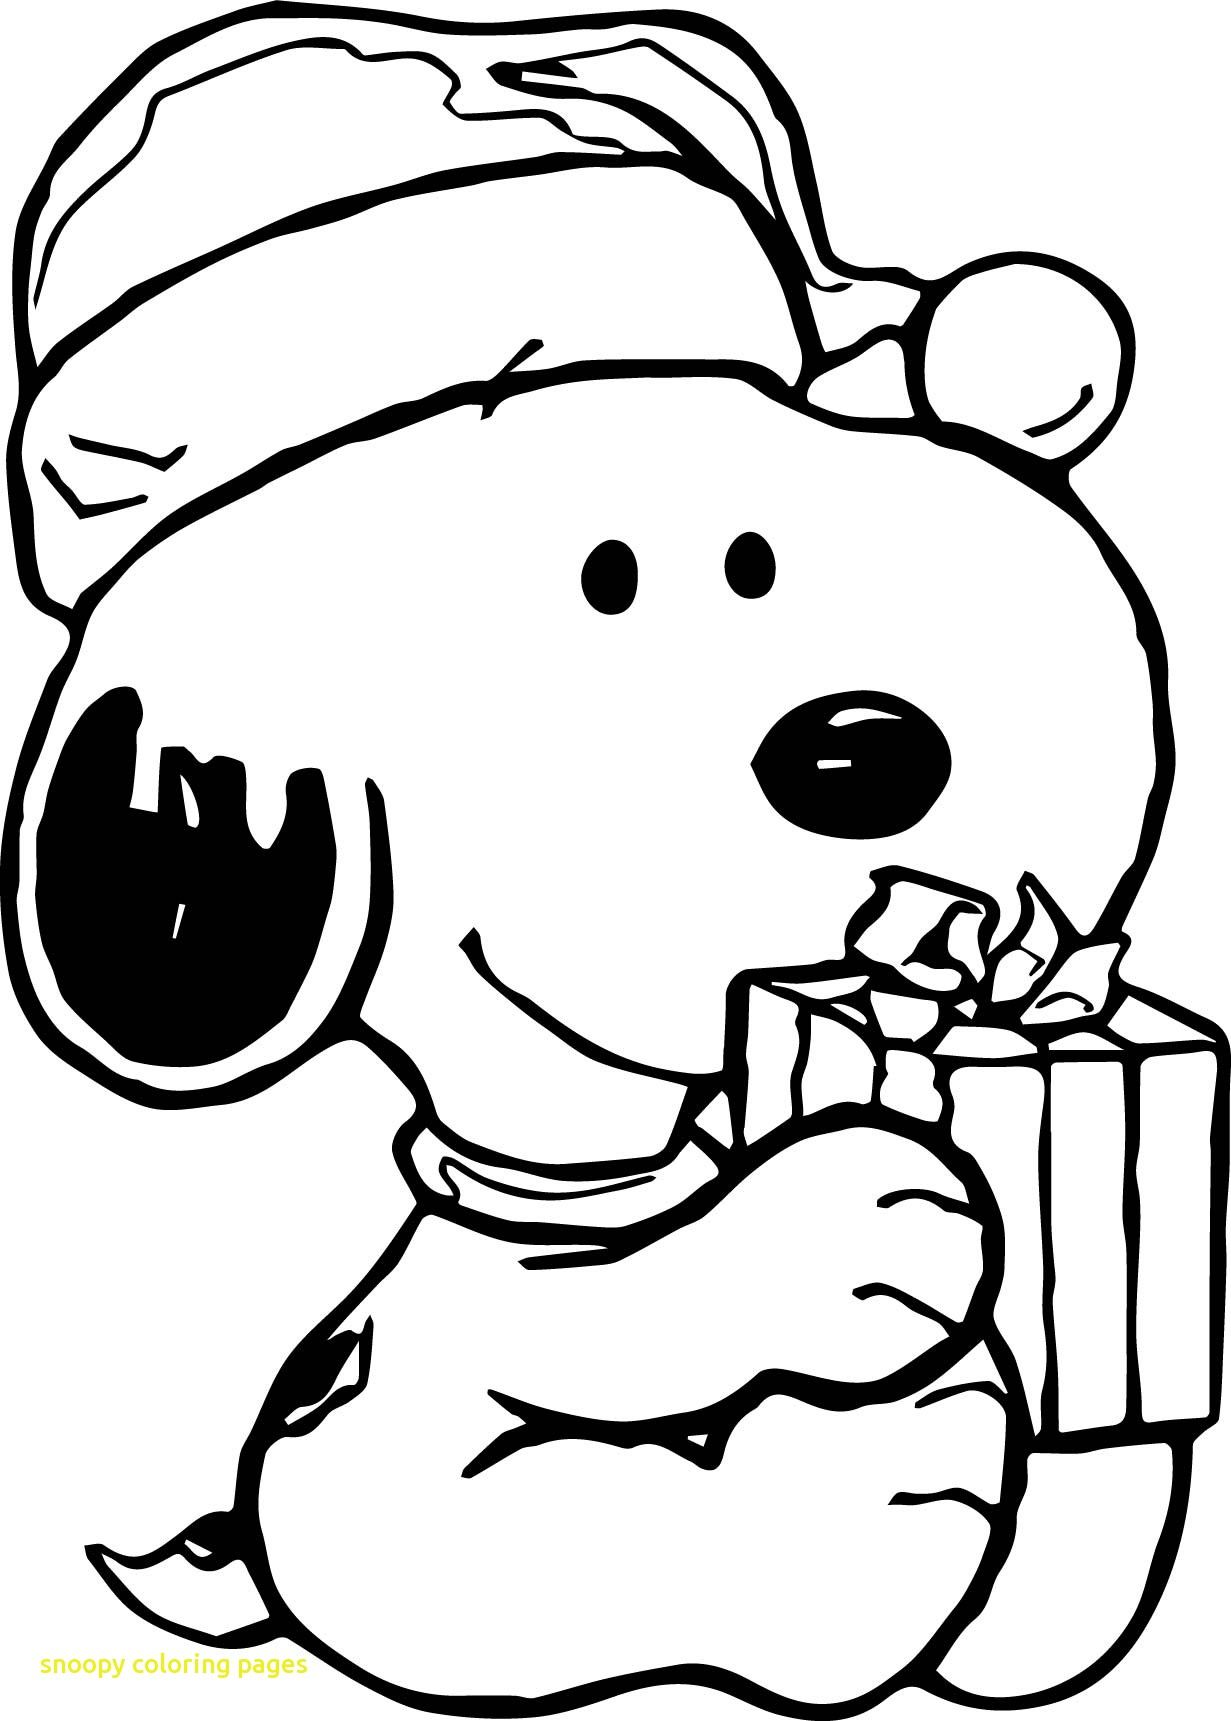 1231x1721 Snoopy Coloring Pages Birthday Copy Snoopy Coloring Pages